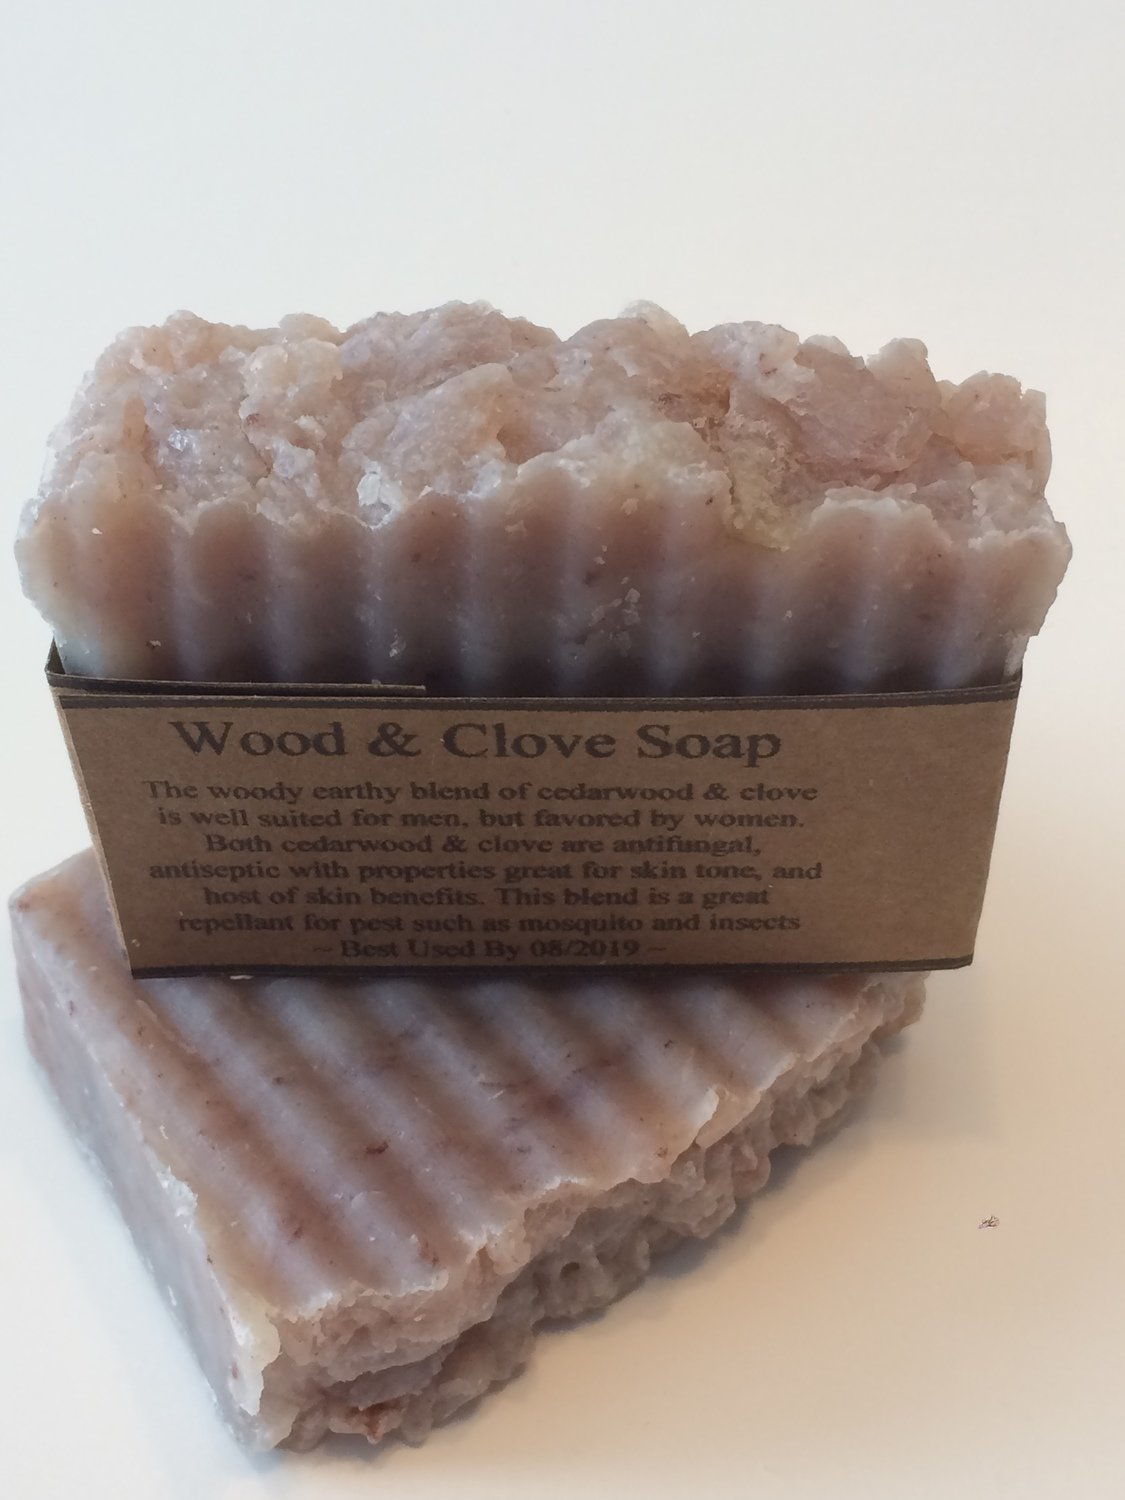 Wood & Clove Handmade Soap